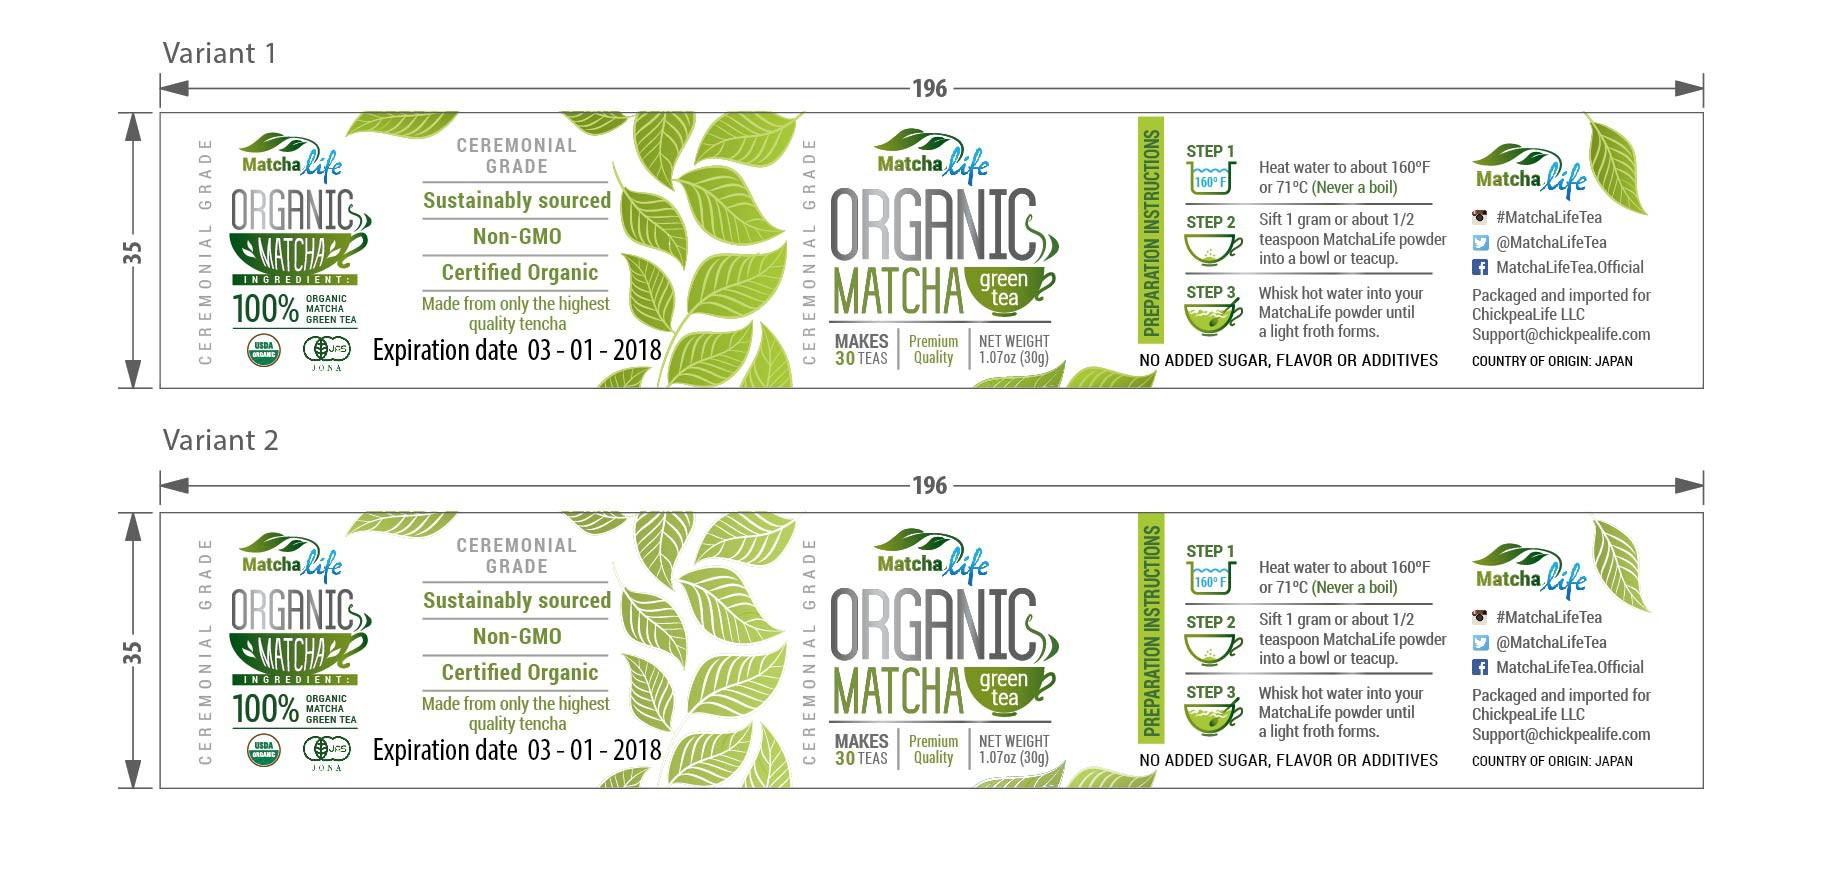 Create an amazing product label for organic MatchaLife matcha green tea!